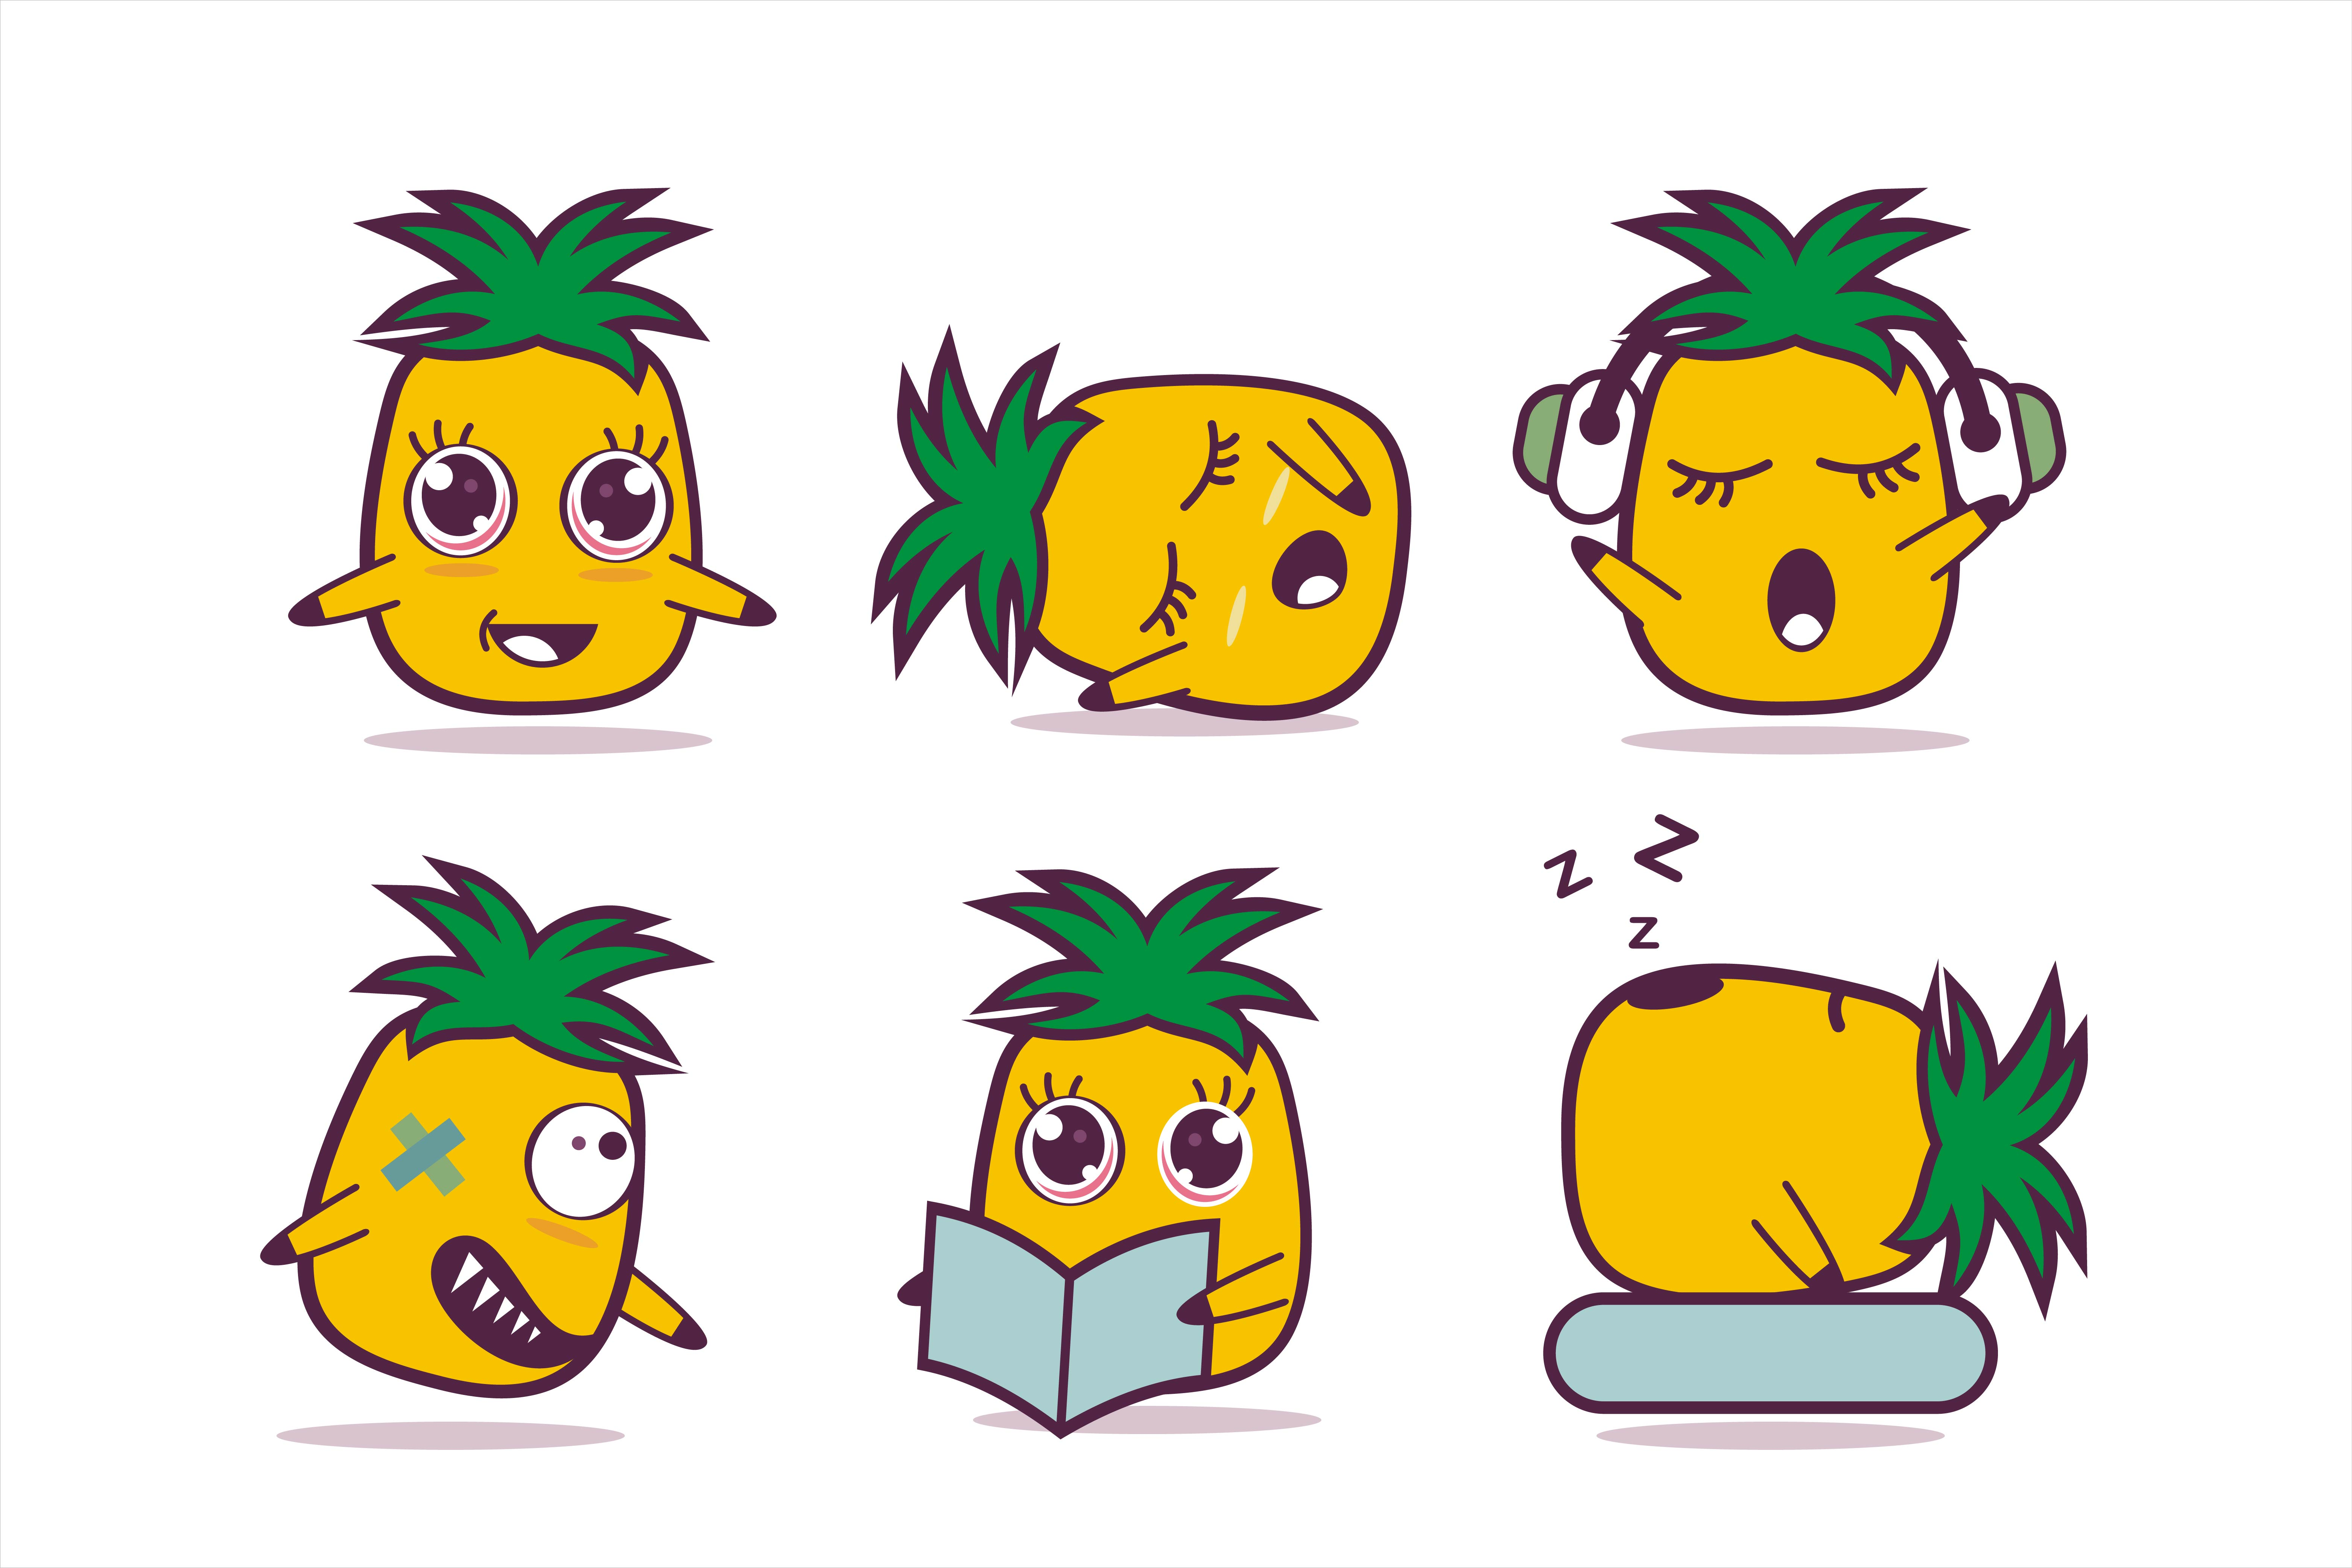 Cute Pineapple Cartoon Character Graphic By Edywiyonopp Creative Fabrica Download 301 pineapple cartoon free vectors. creative fabrica